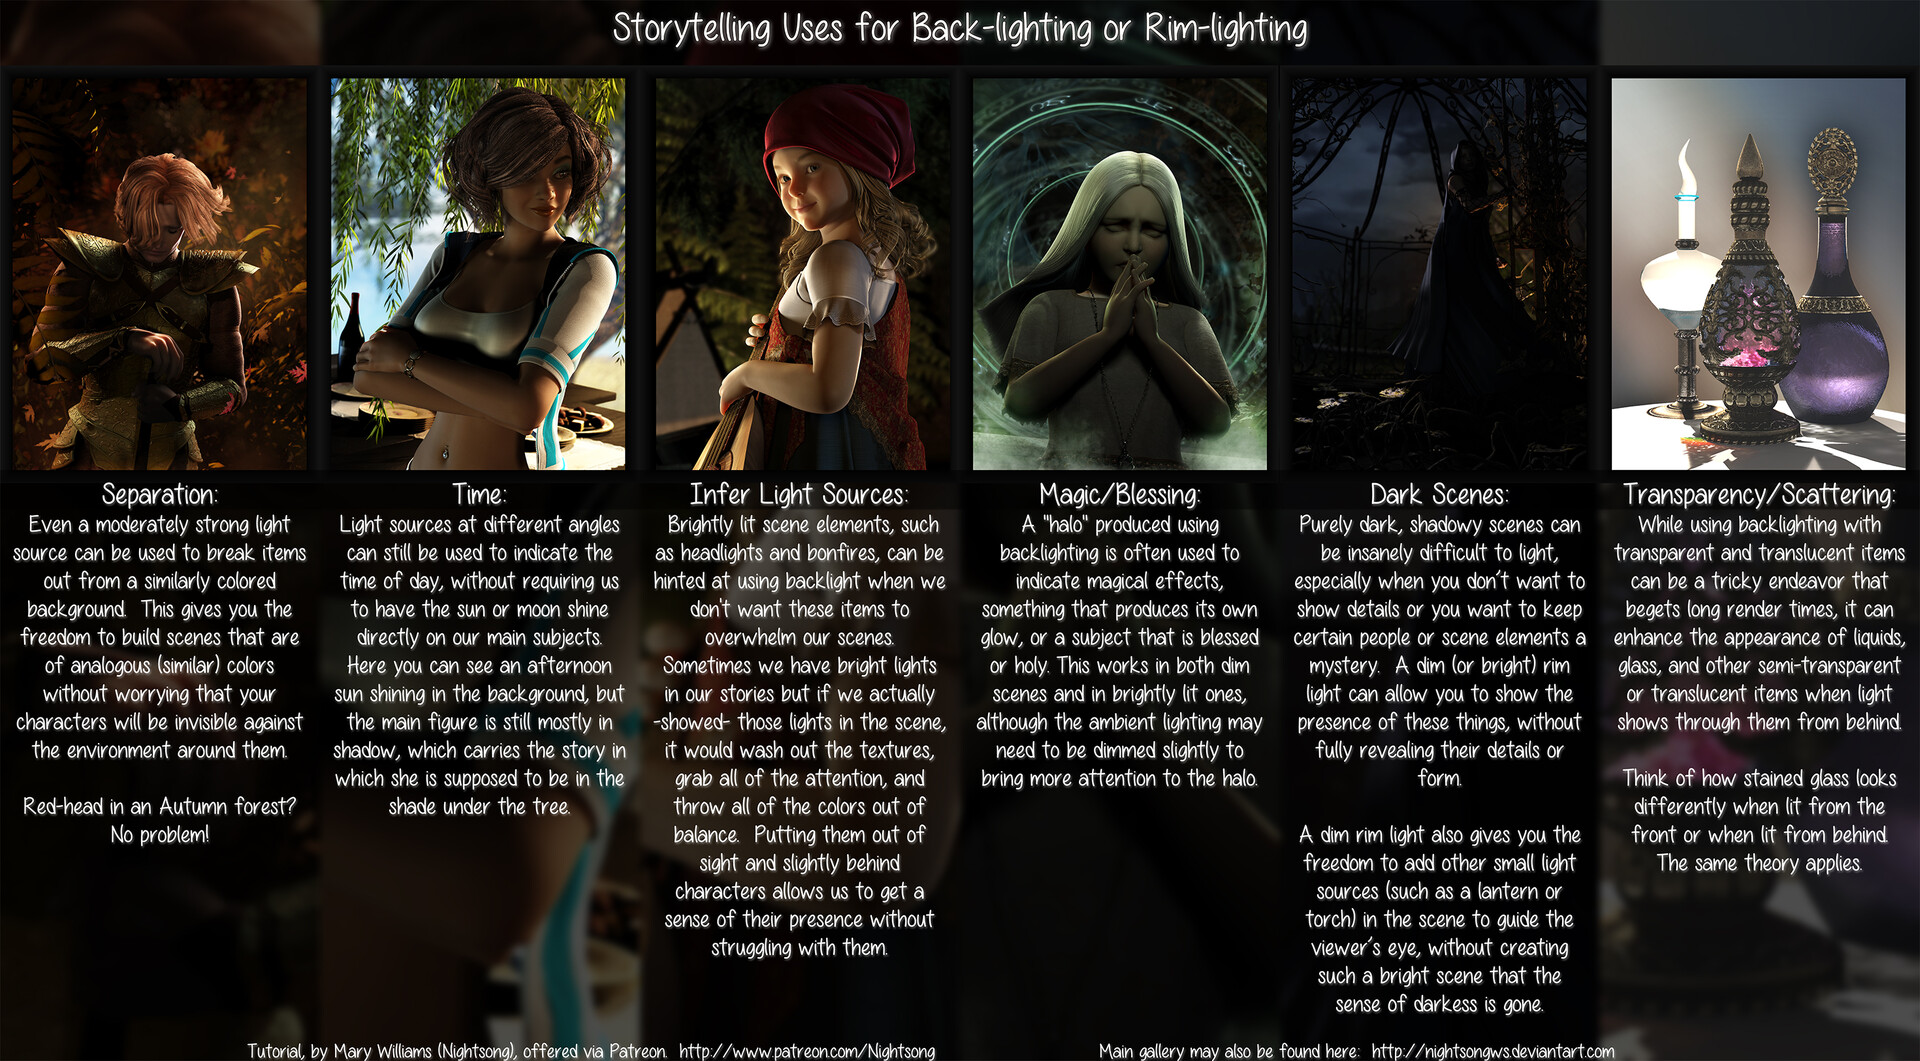 Various uses for backlighting.